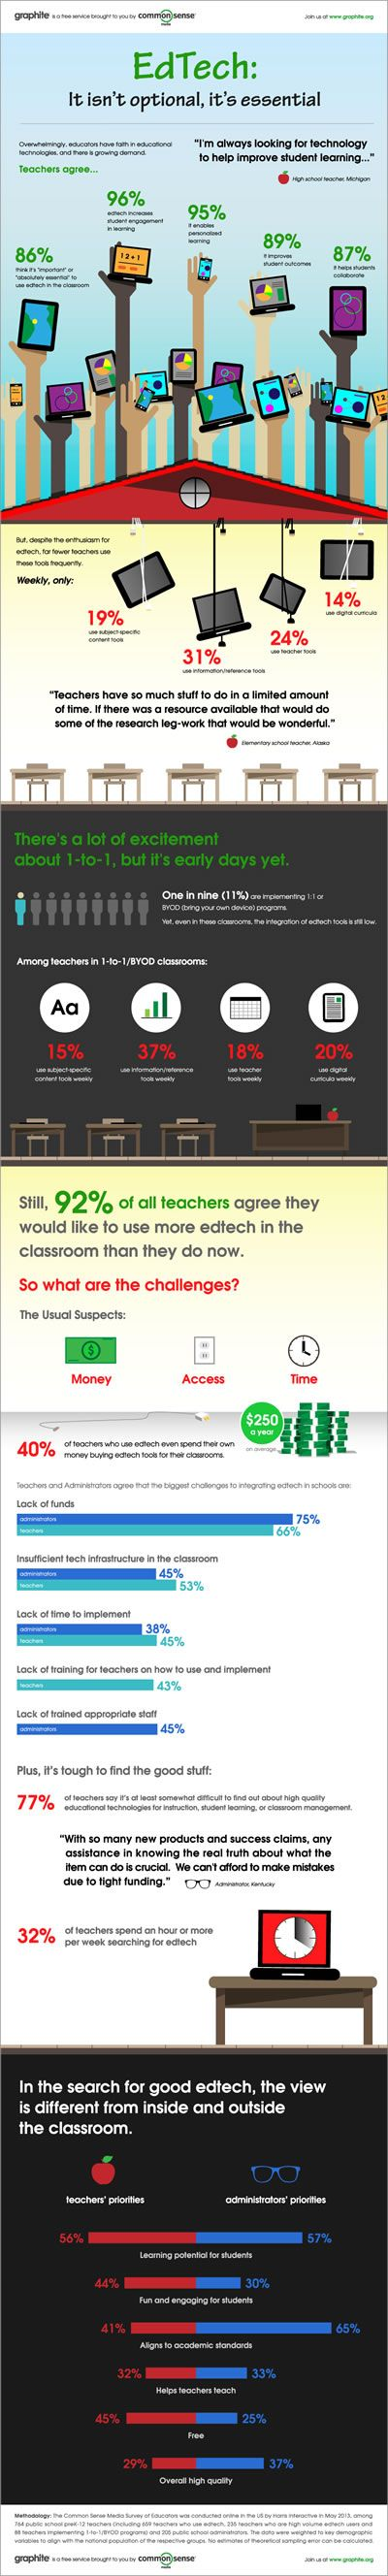 Infographic: Teachers and administrators want more classroom technology #edtech